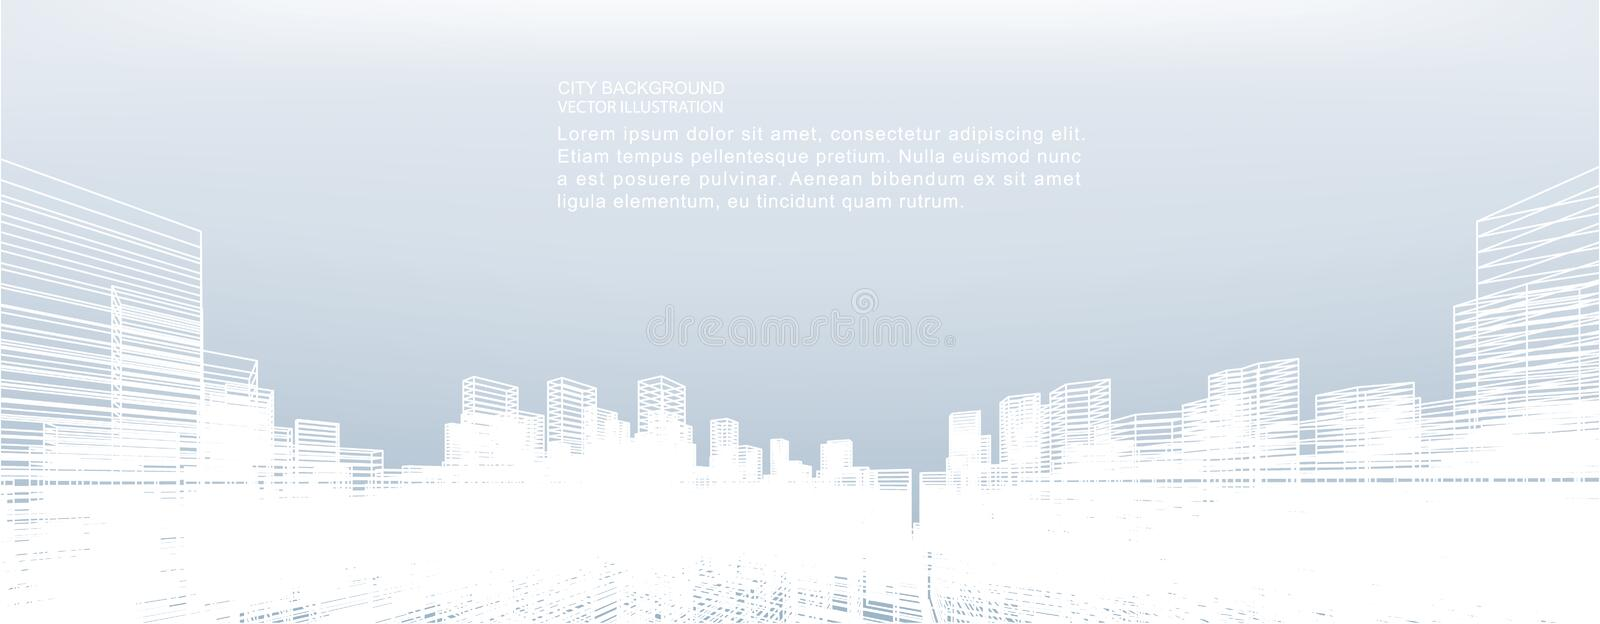 Abstract wireframe city background. Perspective 3D render. Abstract wireframe city background. Perspective 3D render of building wireframe. Vector illustration stock illustration